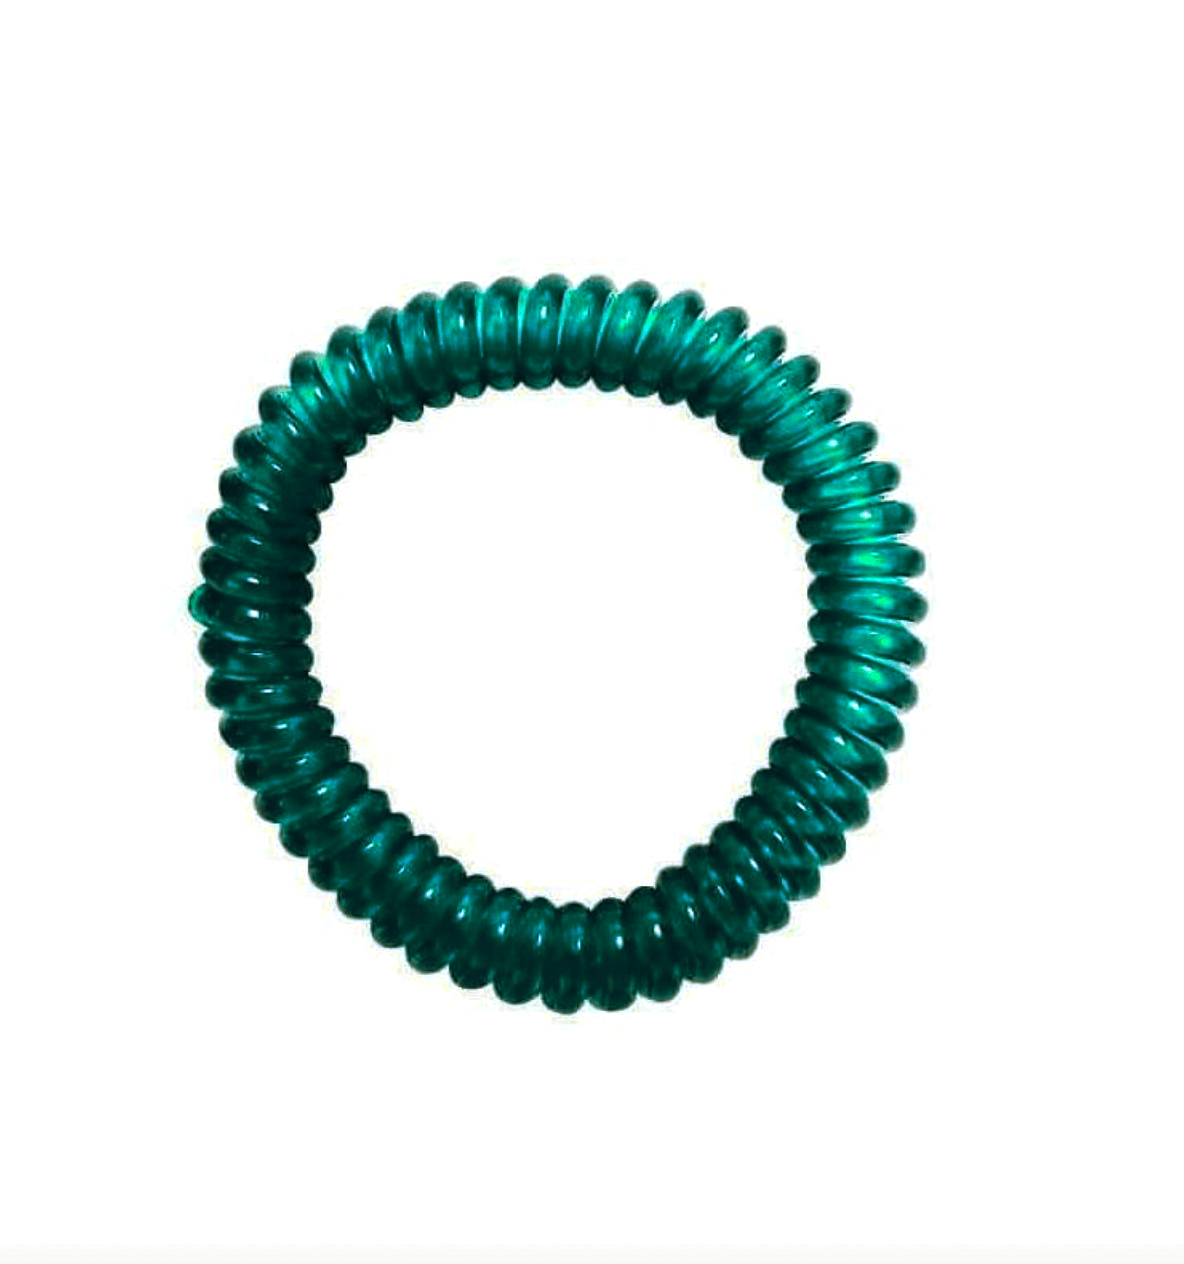 springz Chew Bracelet- Clear Teal Green Color